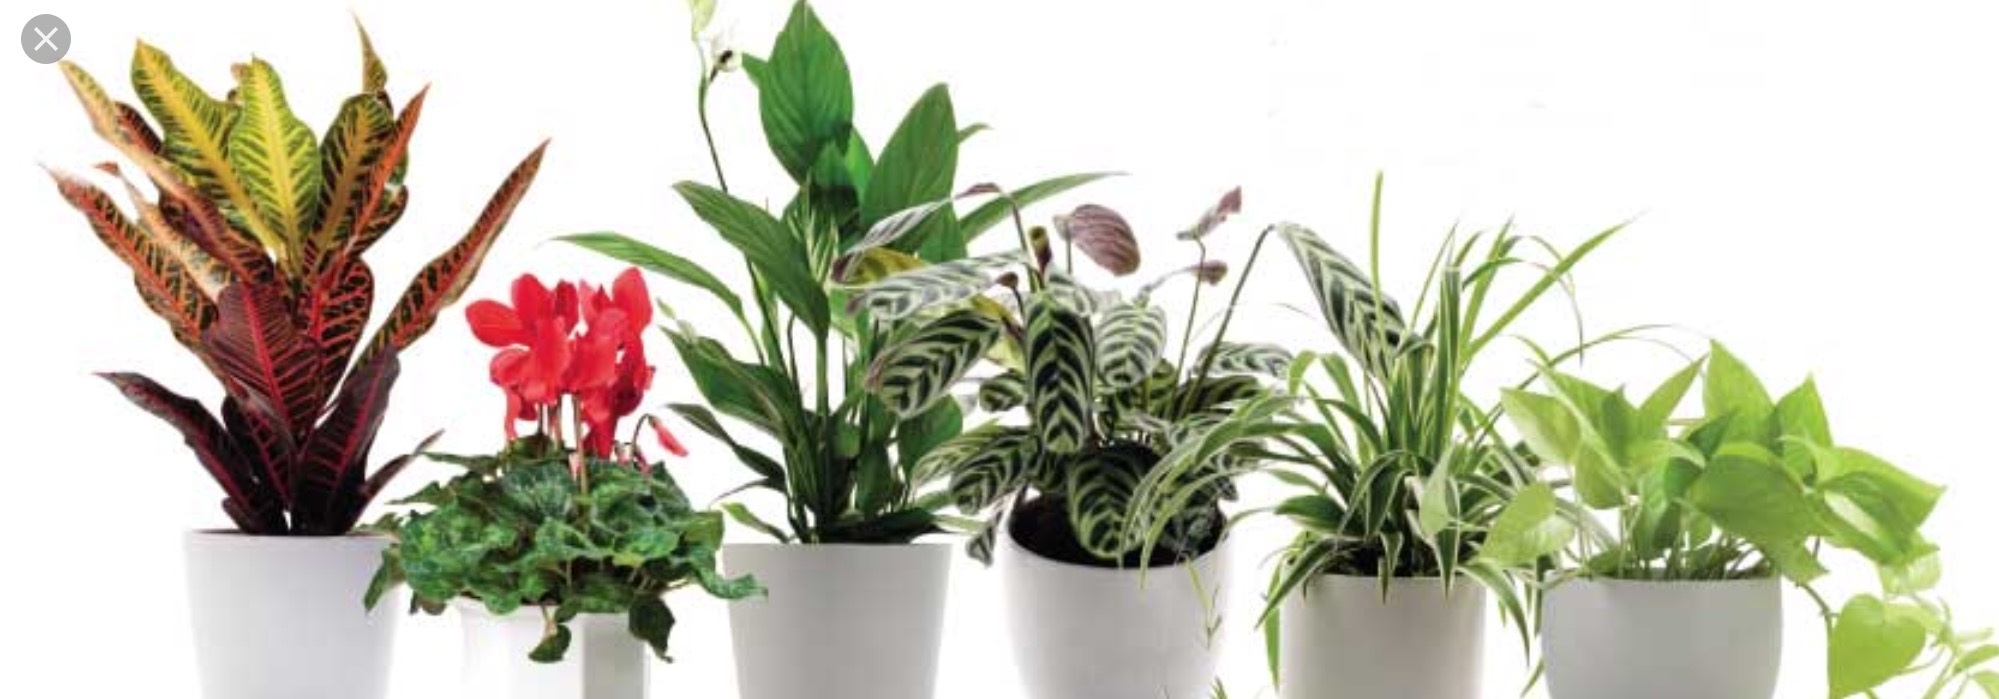 Houseplants for clean air